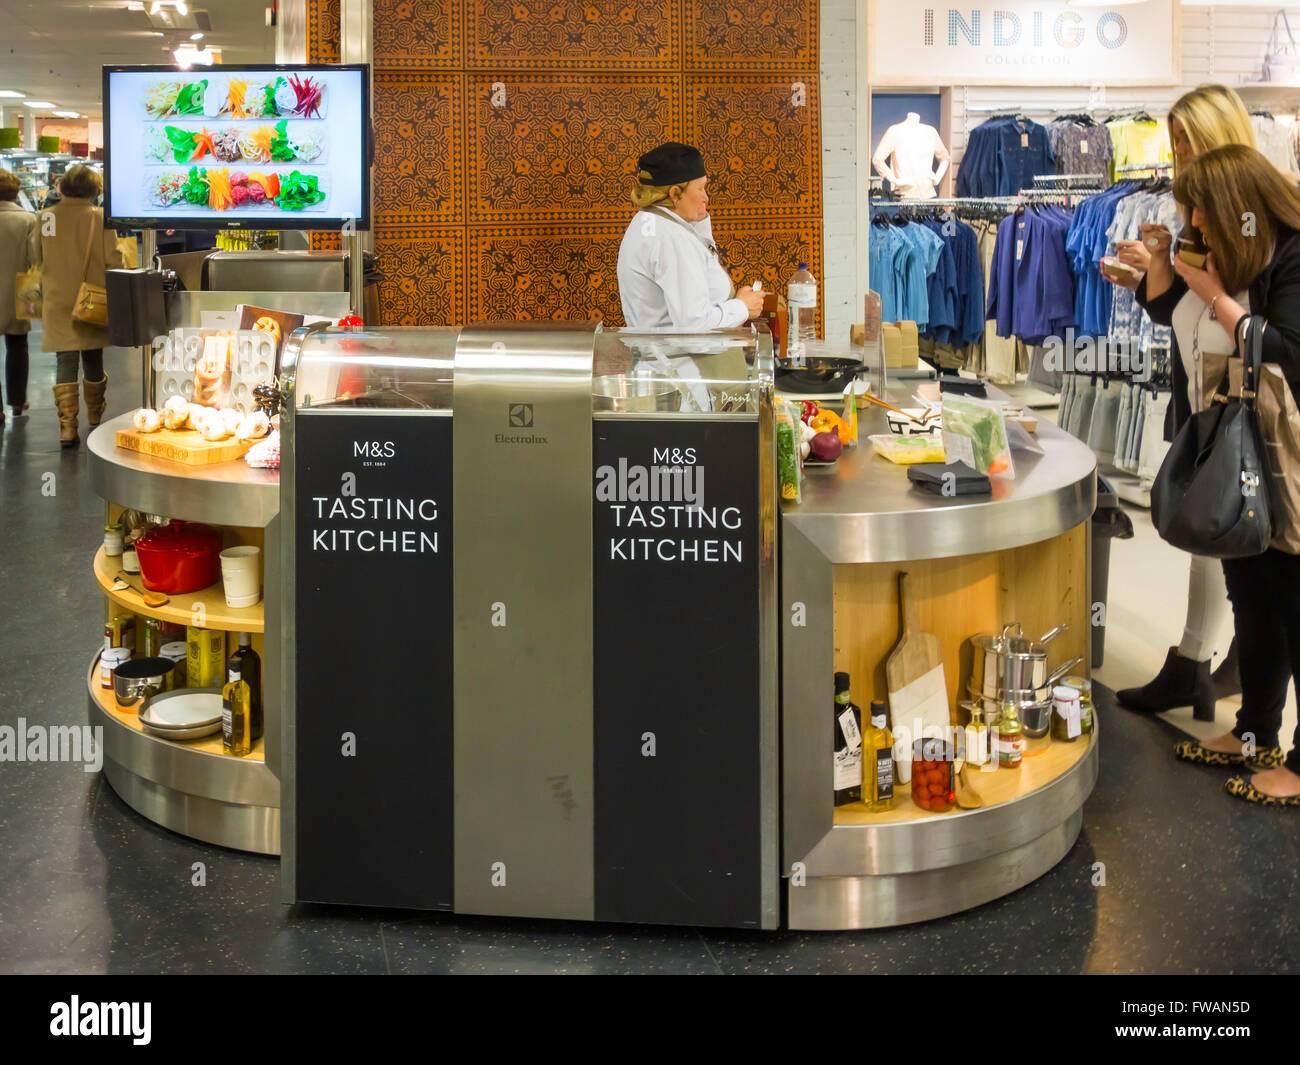 marks amp spencer in store tasting kitchen where customers may taste items from the food store: kitchen items store